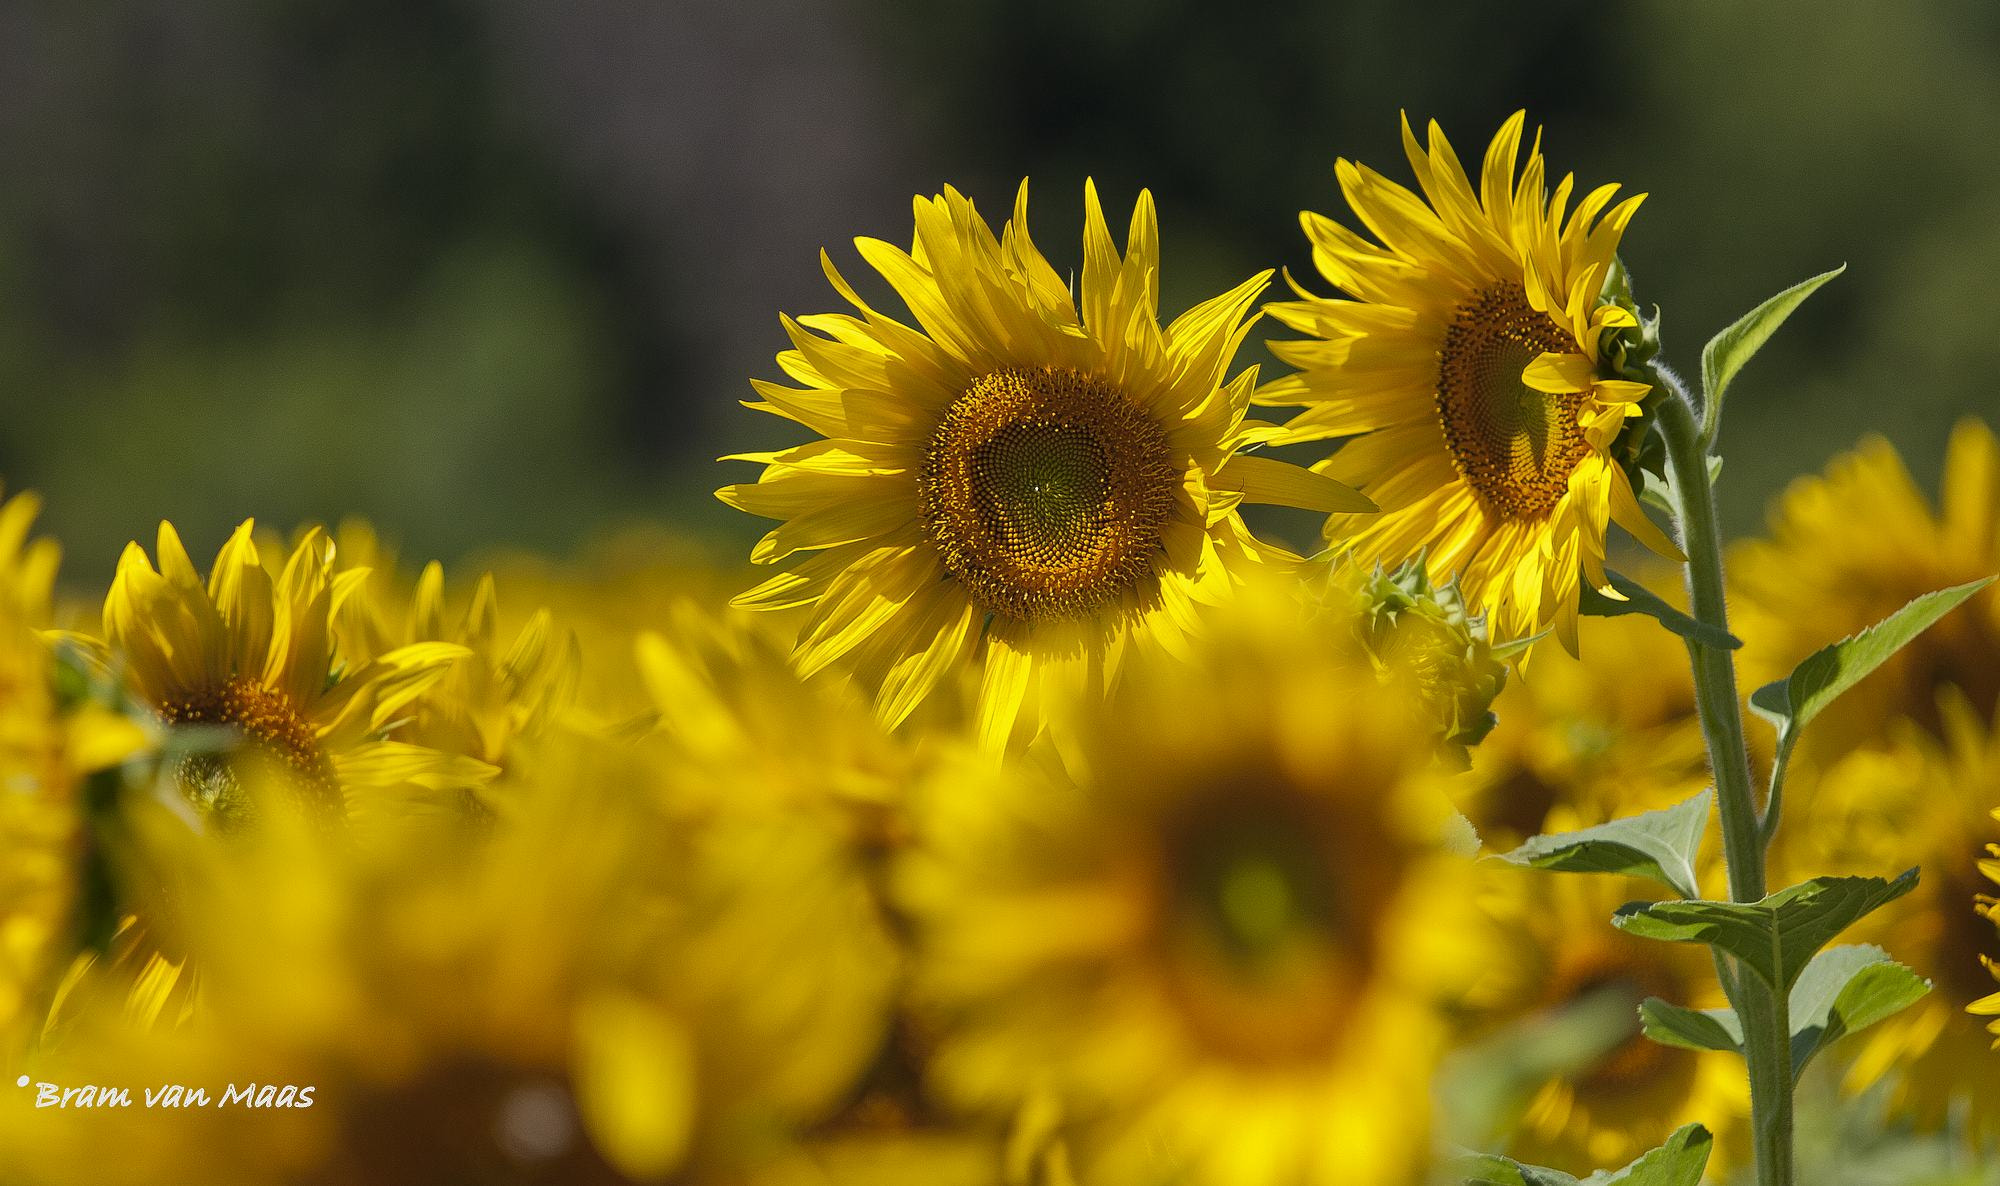 Photograph Les tournesols by Bram van Maas on 500px